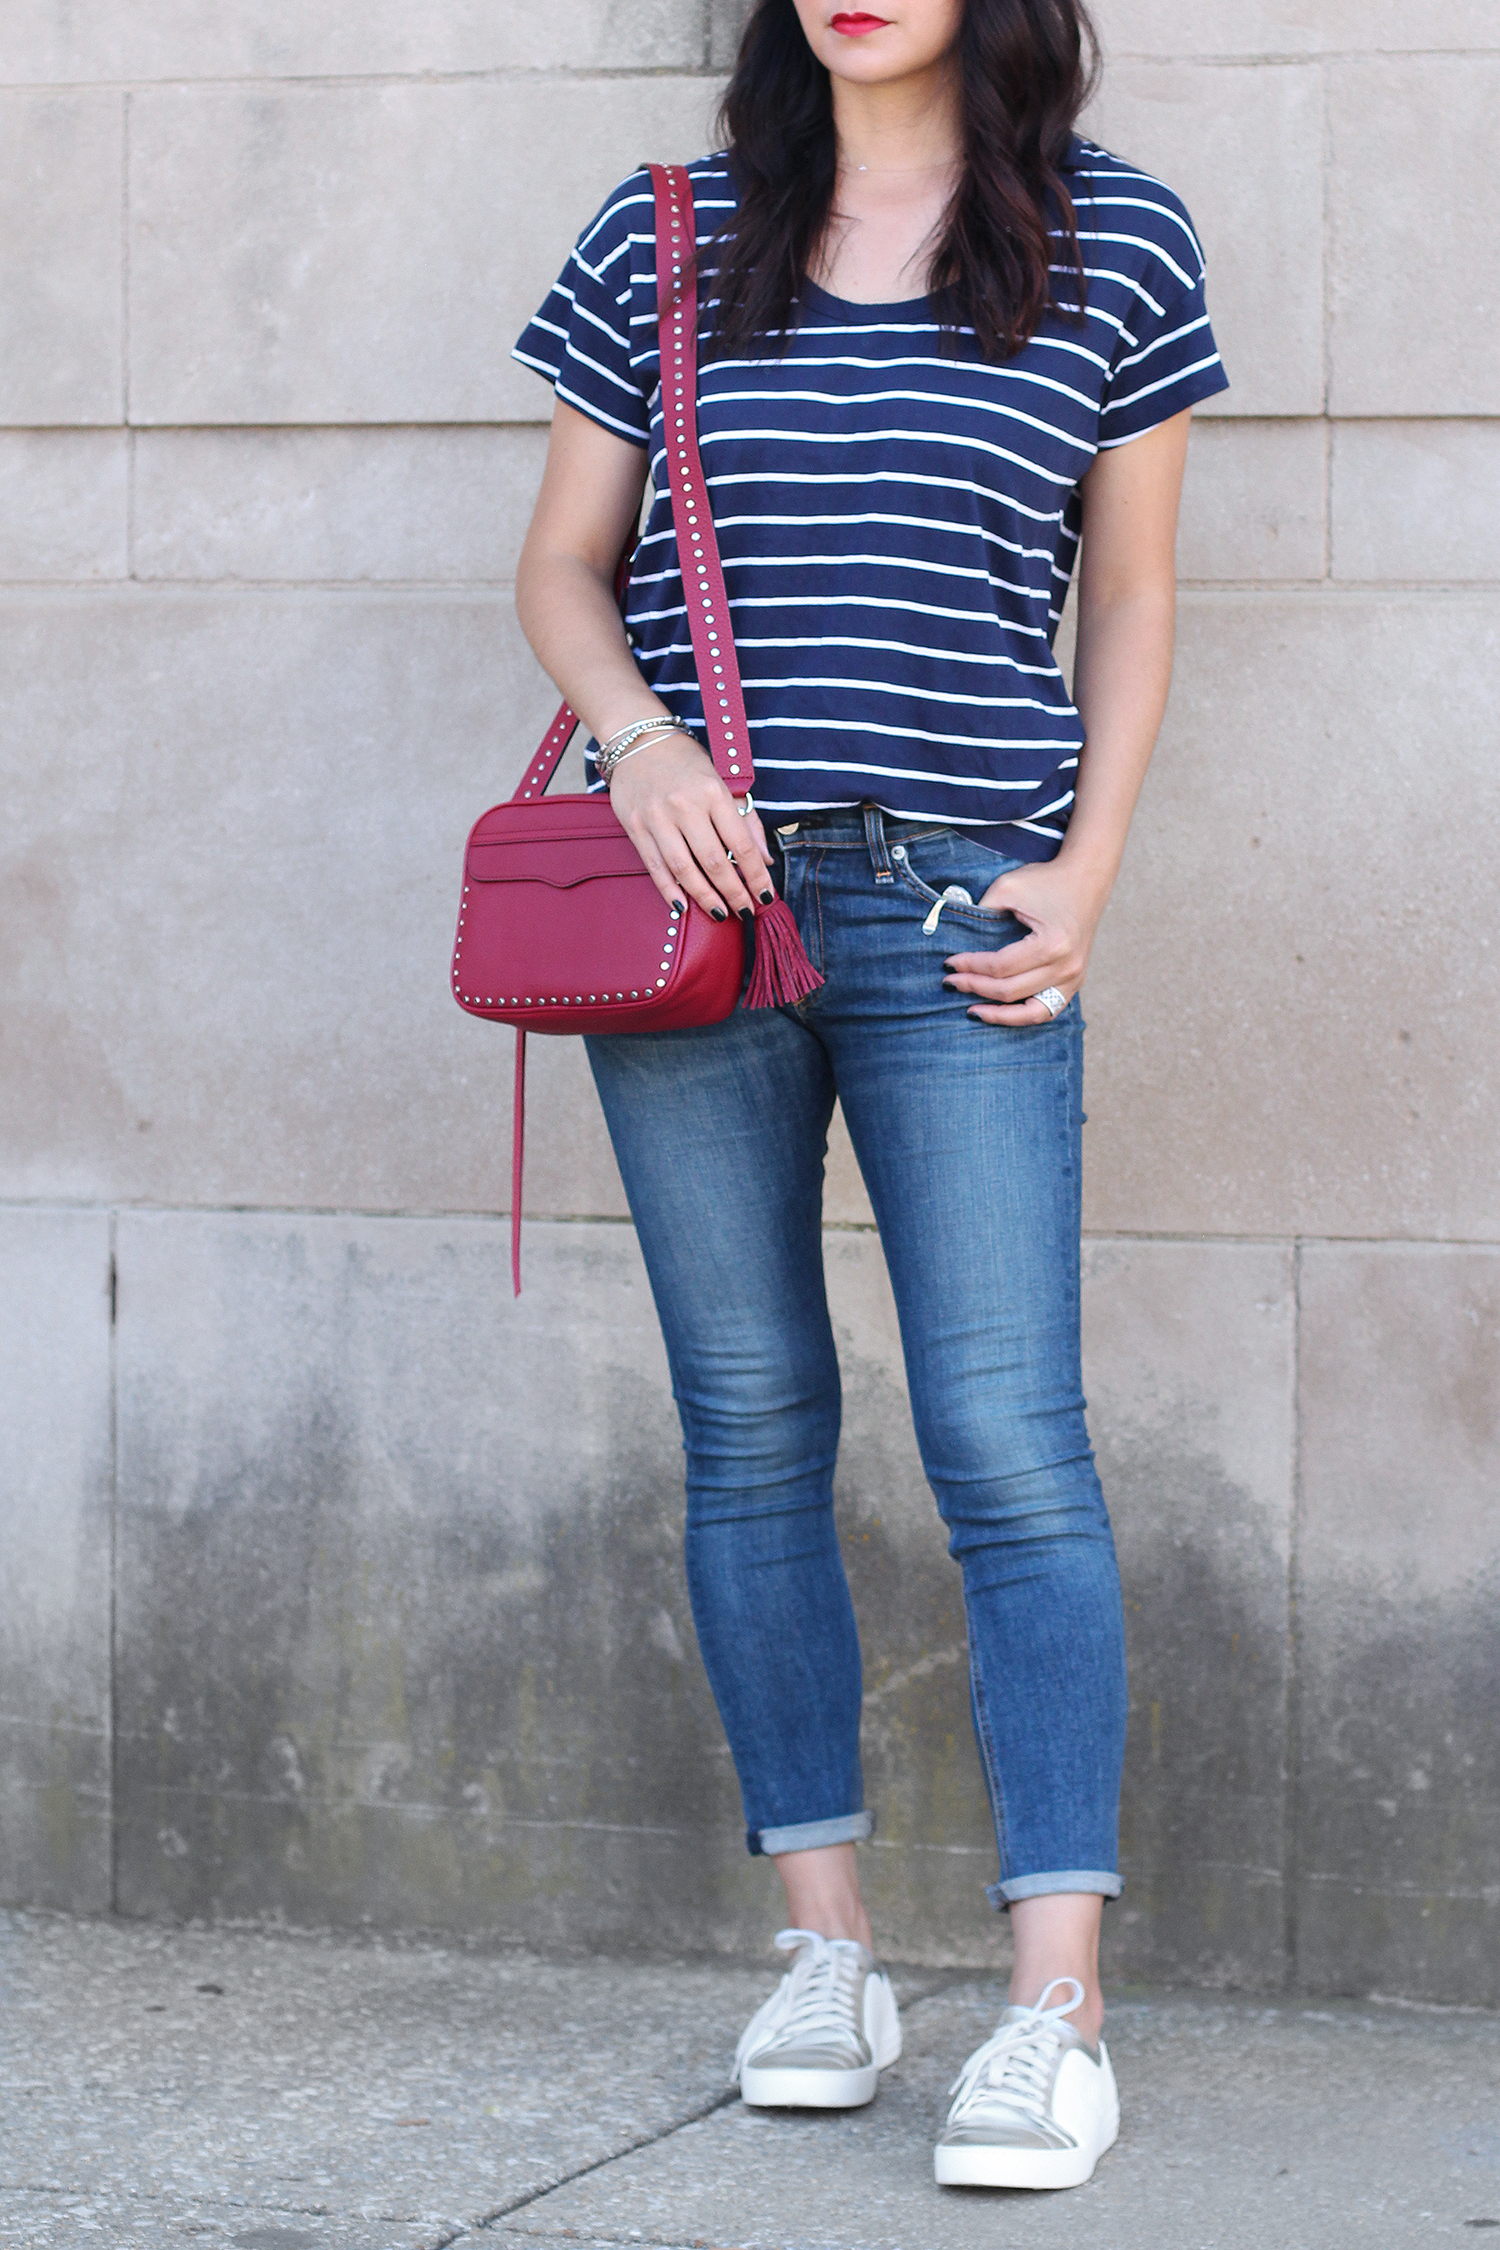 Red, White, Blue Outfit, Blue Striped Shirt, Chanel Shoes